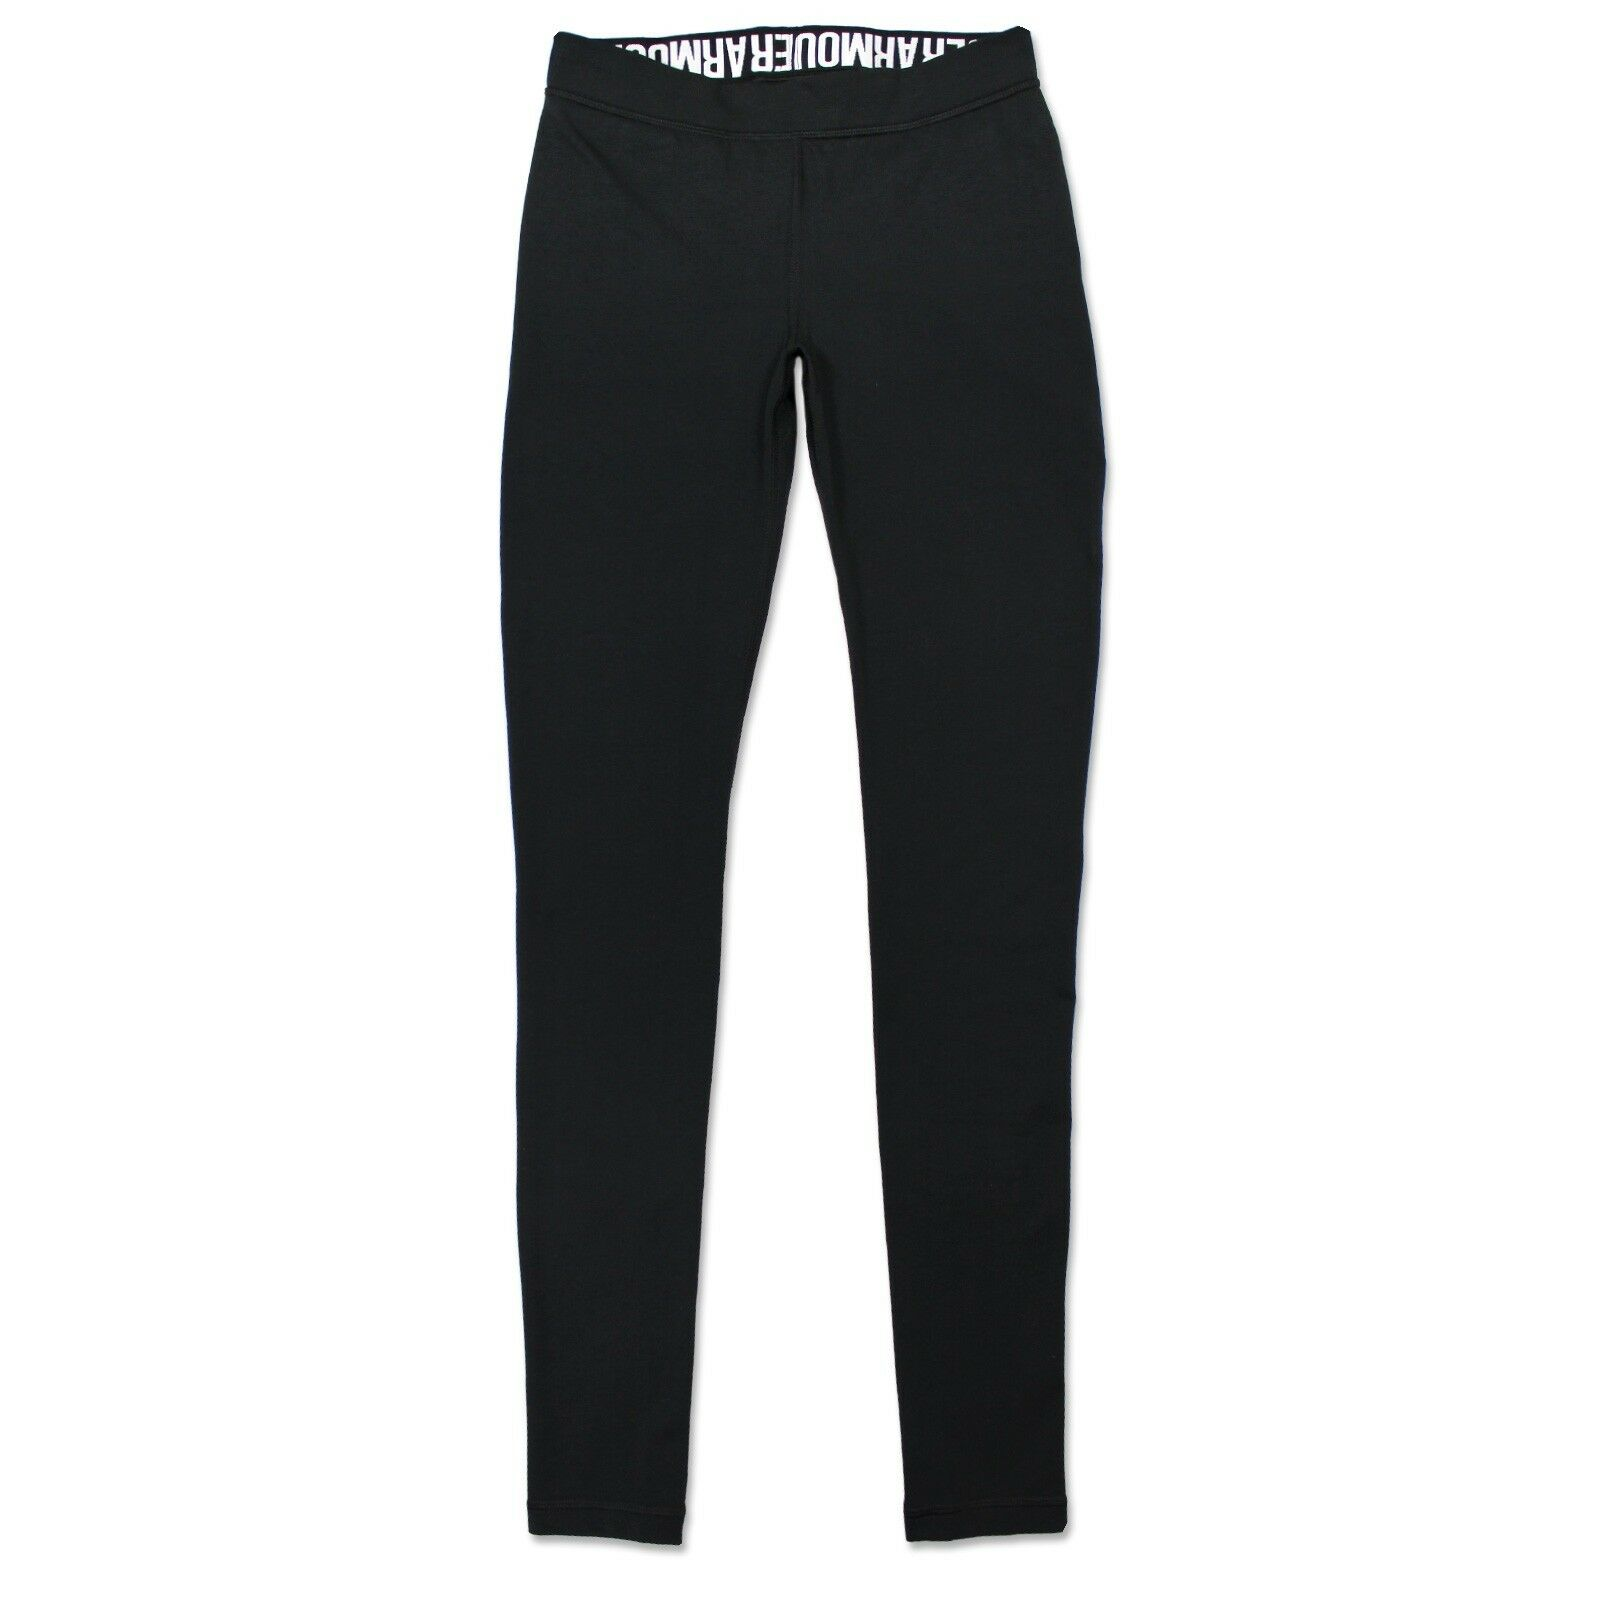 Under Armour Heatgear Favorite Legging Fitness Jogging Pantaloni Sportivi NERO L